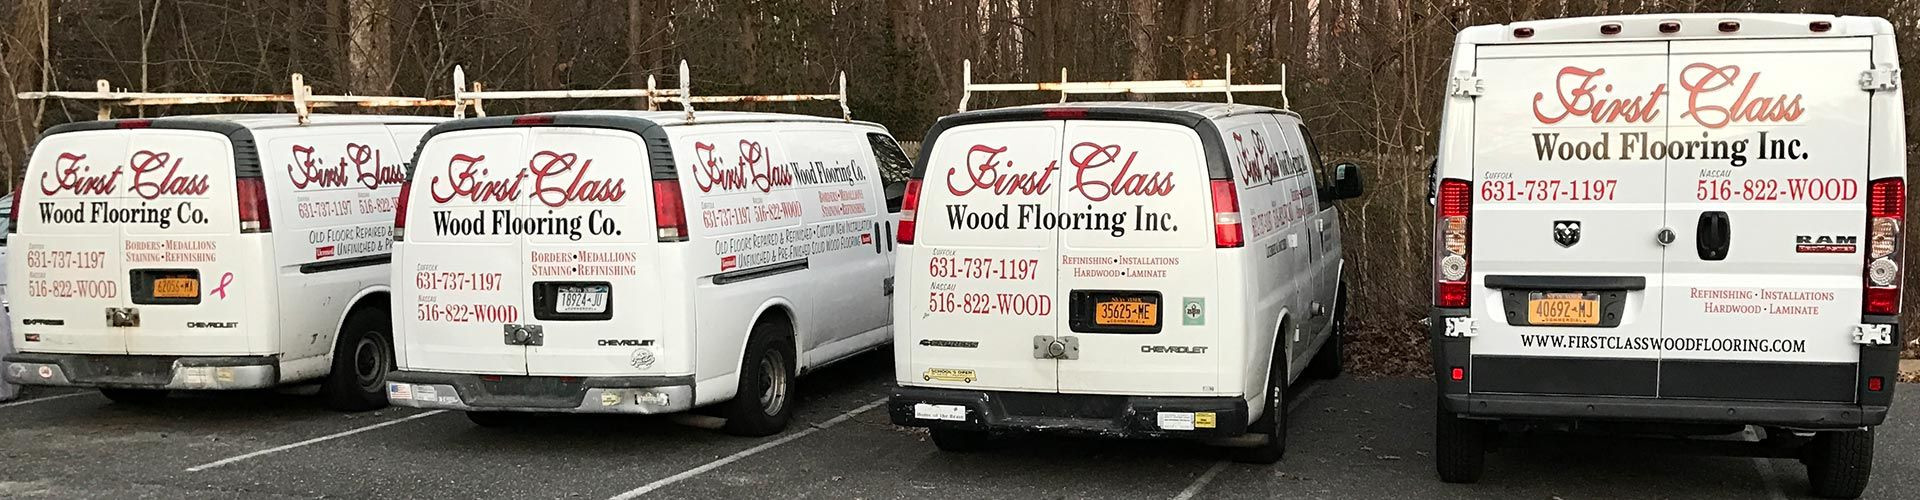 How to Care for Engineered Hardwood Floors Of First Class Wood Flooring Have Years Of Experience In Installing Inside First Class Wood Flooring Have Years Of Experience In Installing Laminate Floors Engineered Hardwood Hardwood Floor Refinishing In Suffolk County and East